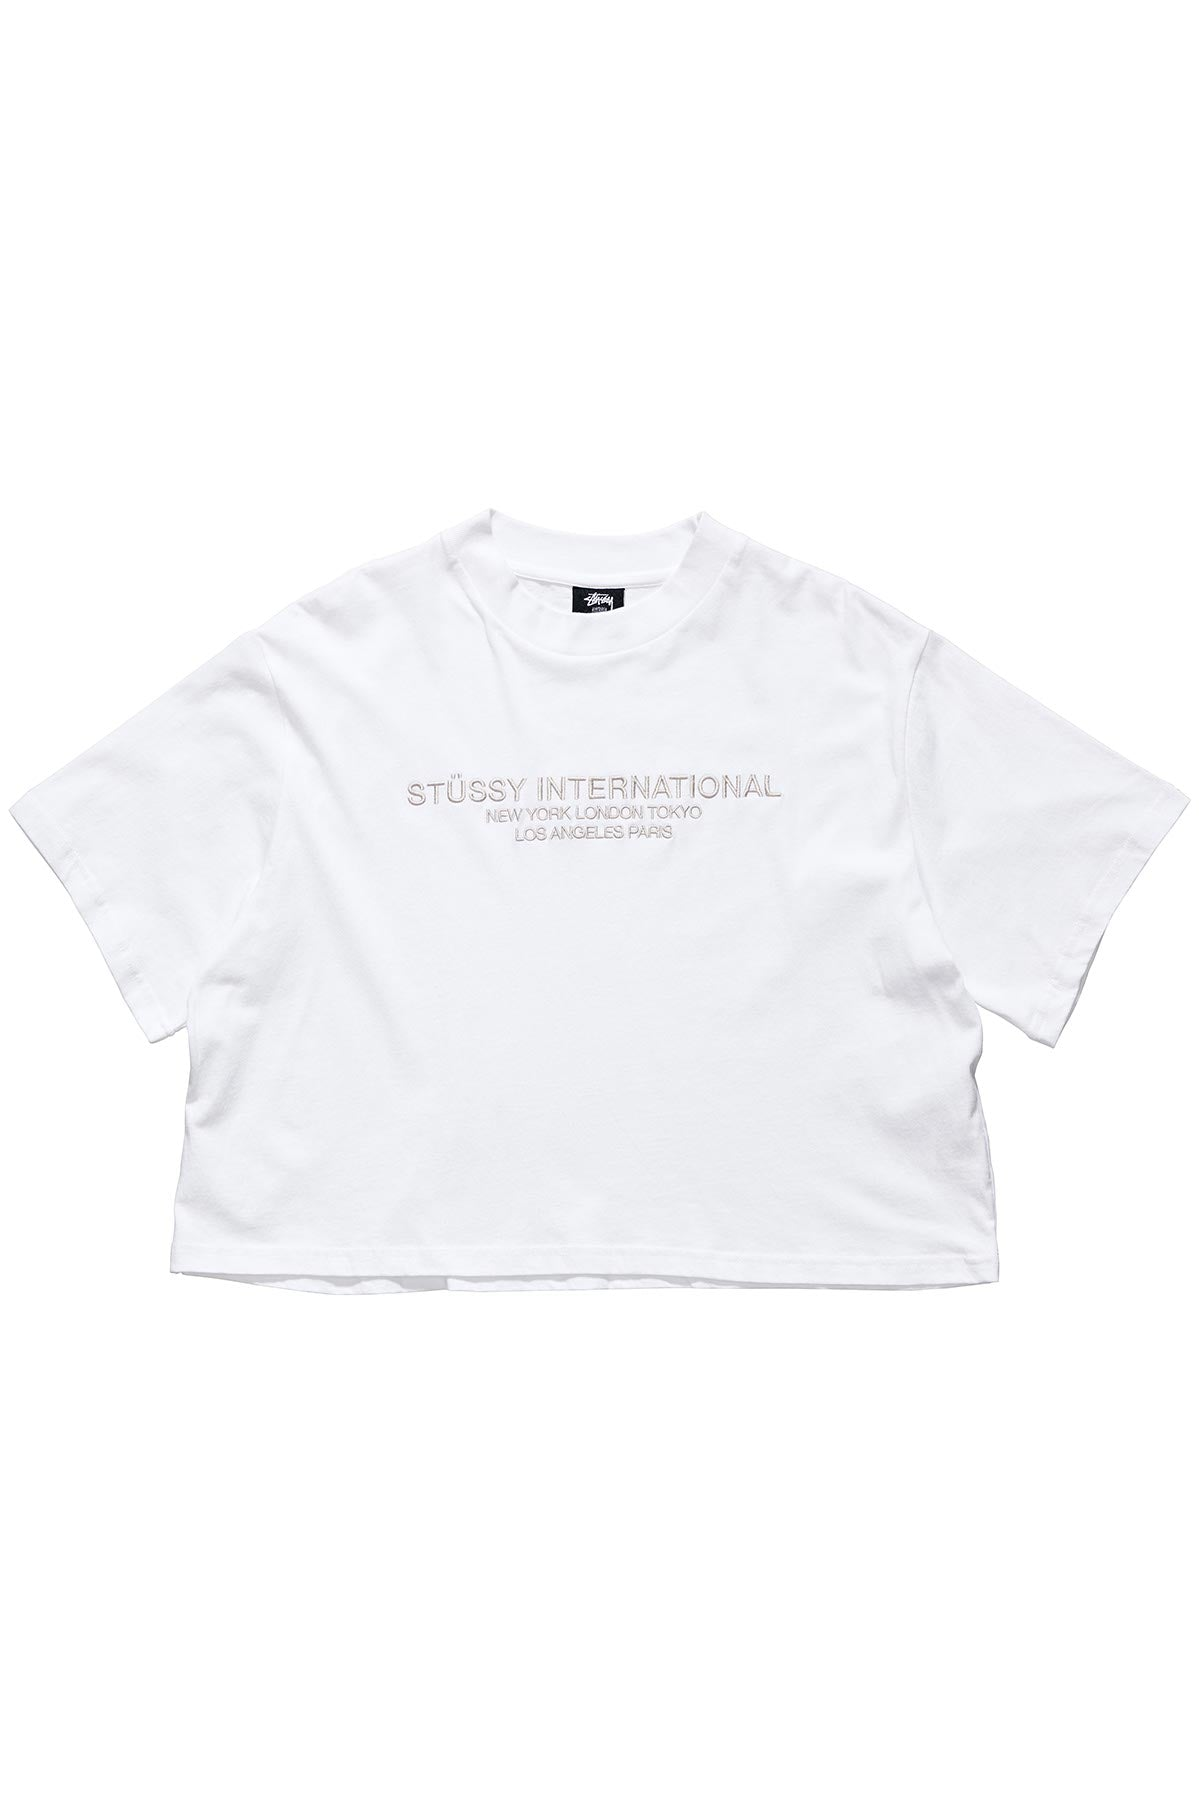 International Boxy Tee